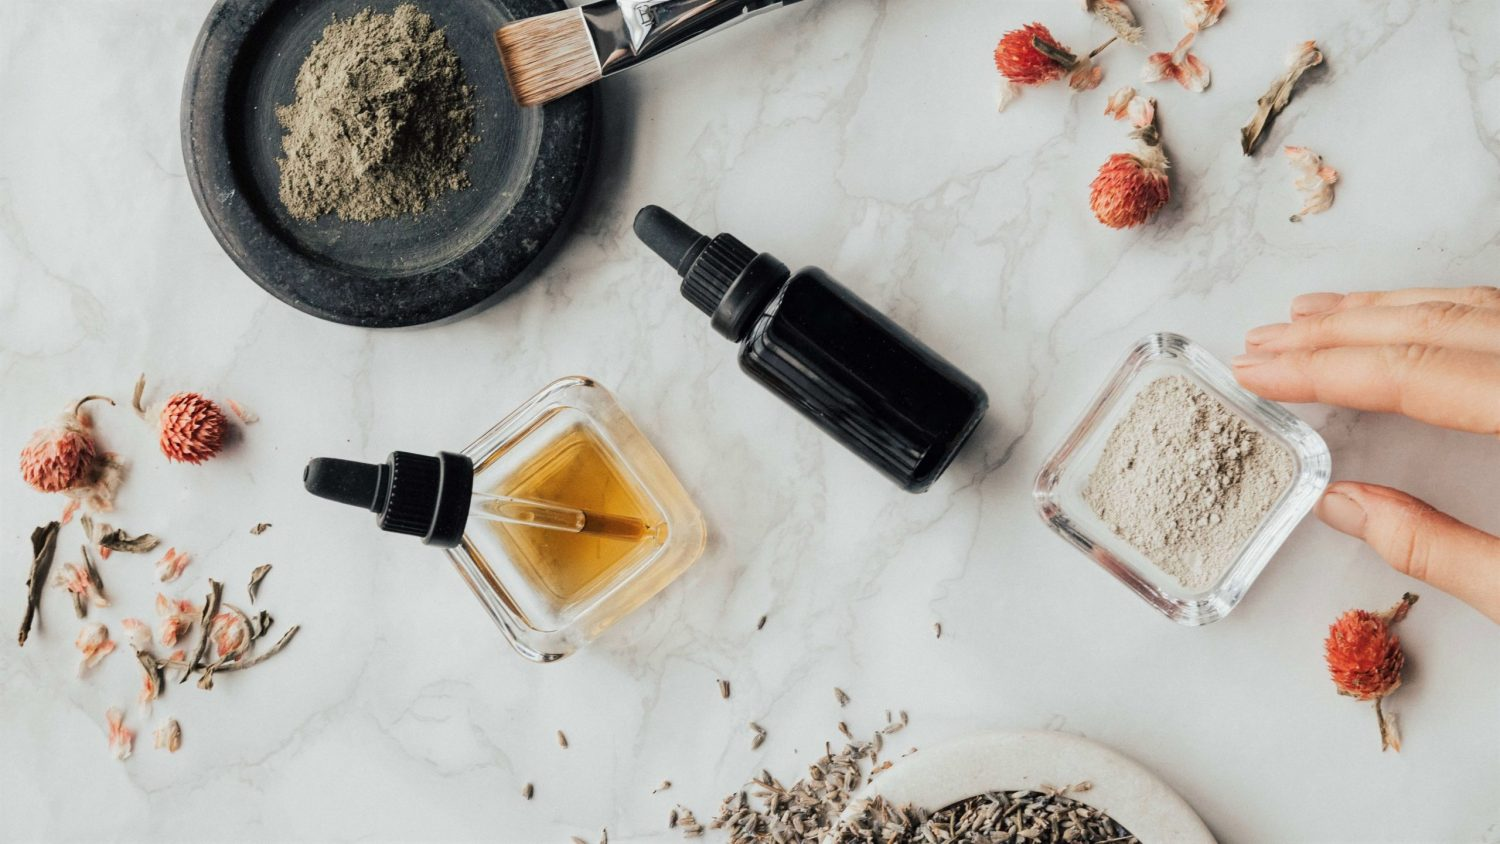 Top 3 products to detox your beauty bag Blog, by Emalyse the Naturopath